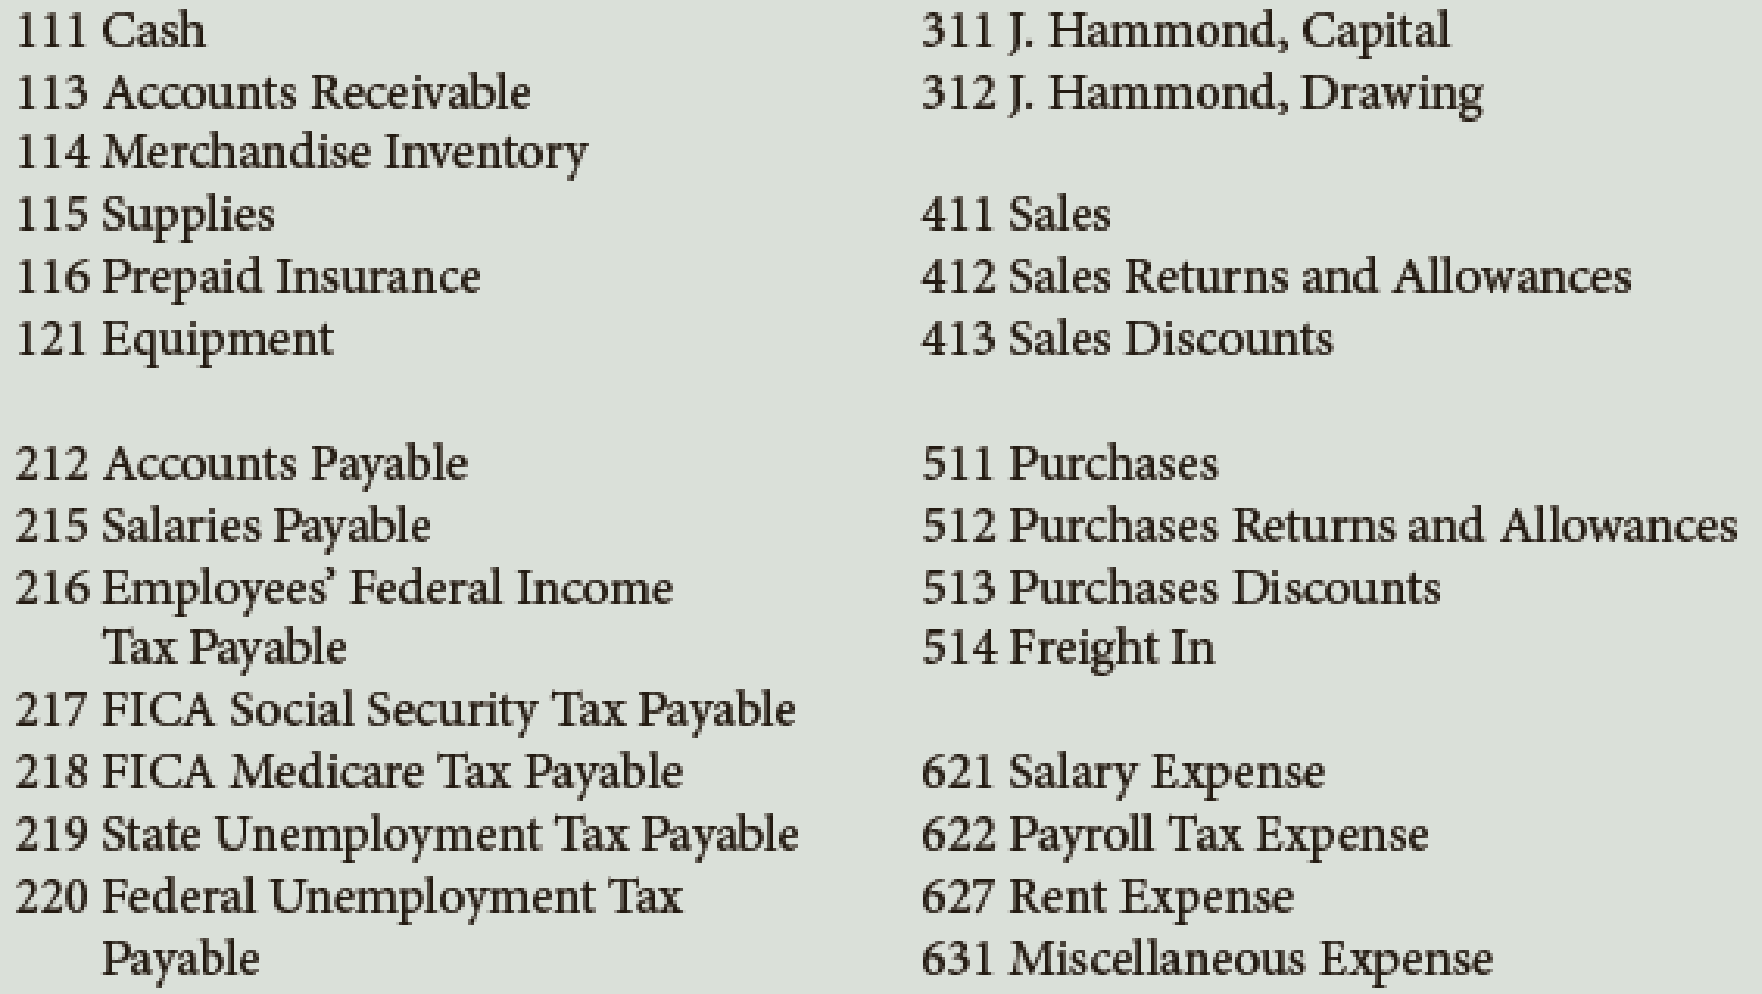 Chapter 10, Problem 4PA, The following transactions were completed by Hammond Auto Supply during January, which is the first